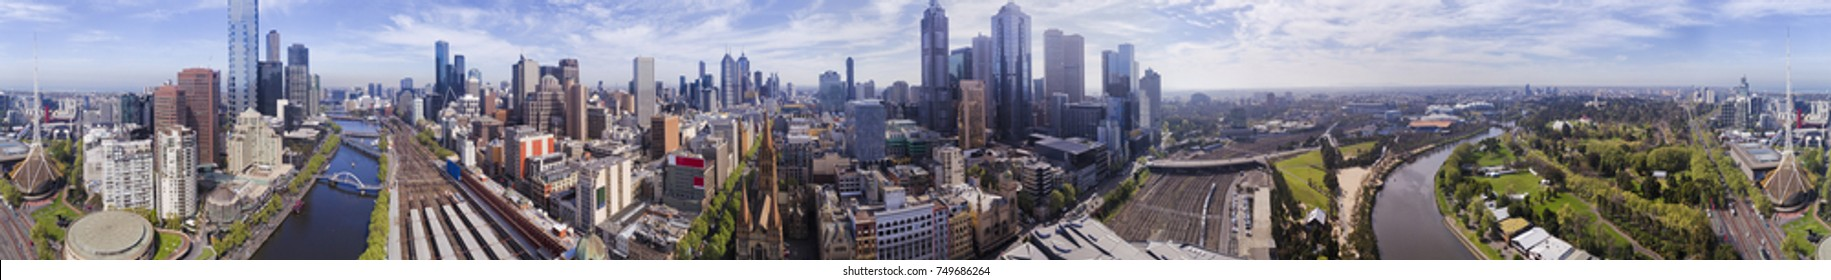 ultra wide 360 degrees panorama of Melbourne city CBD above Yarra river and surrounding high-rises and major city landmarks.